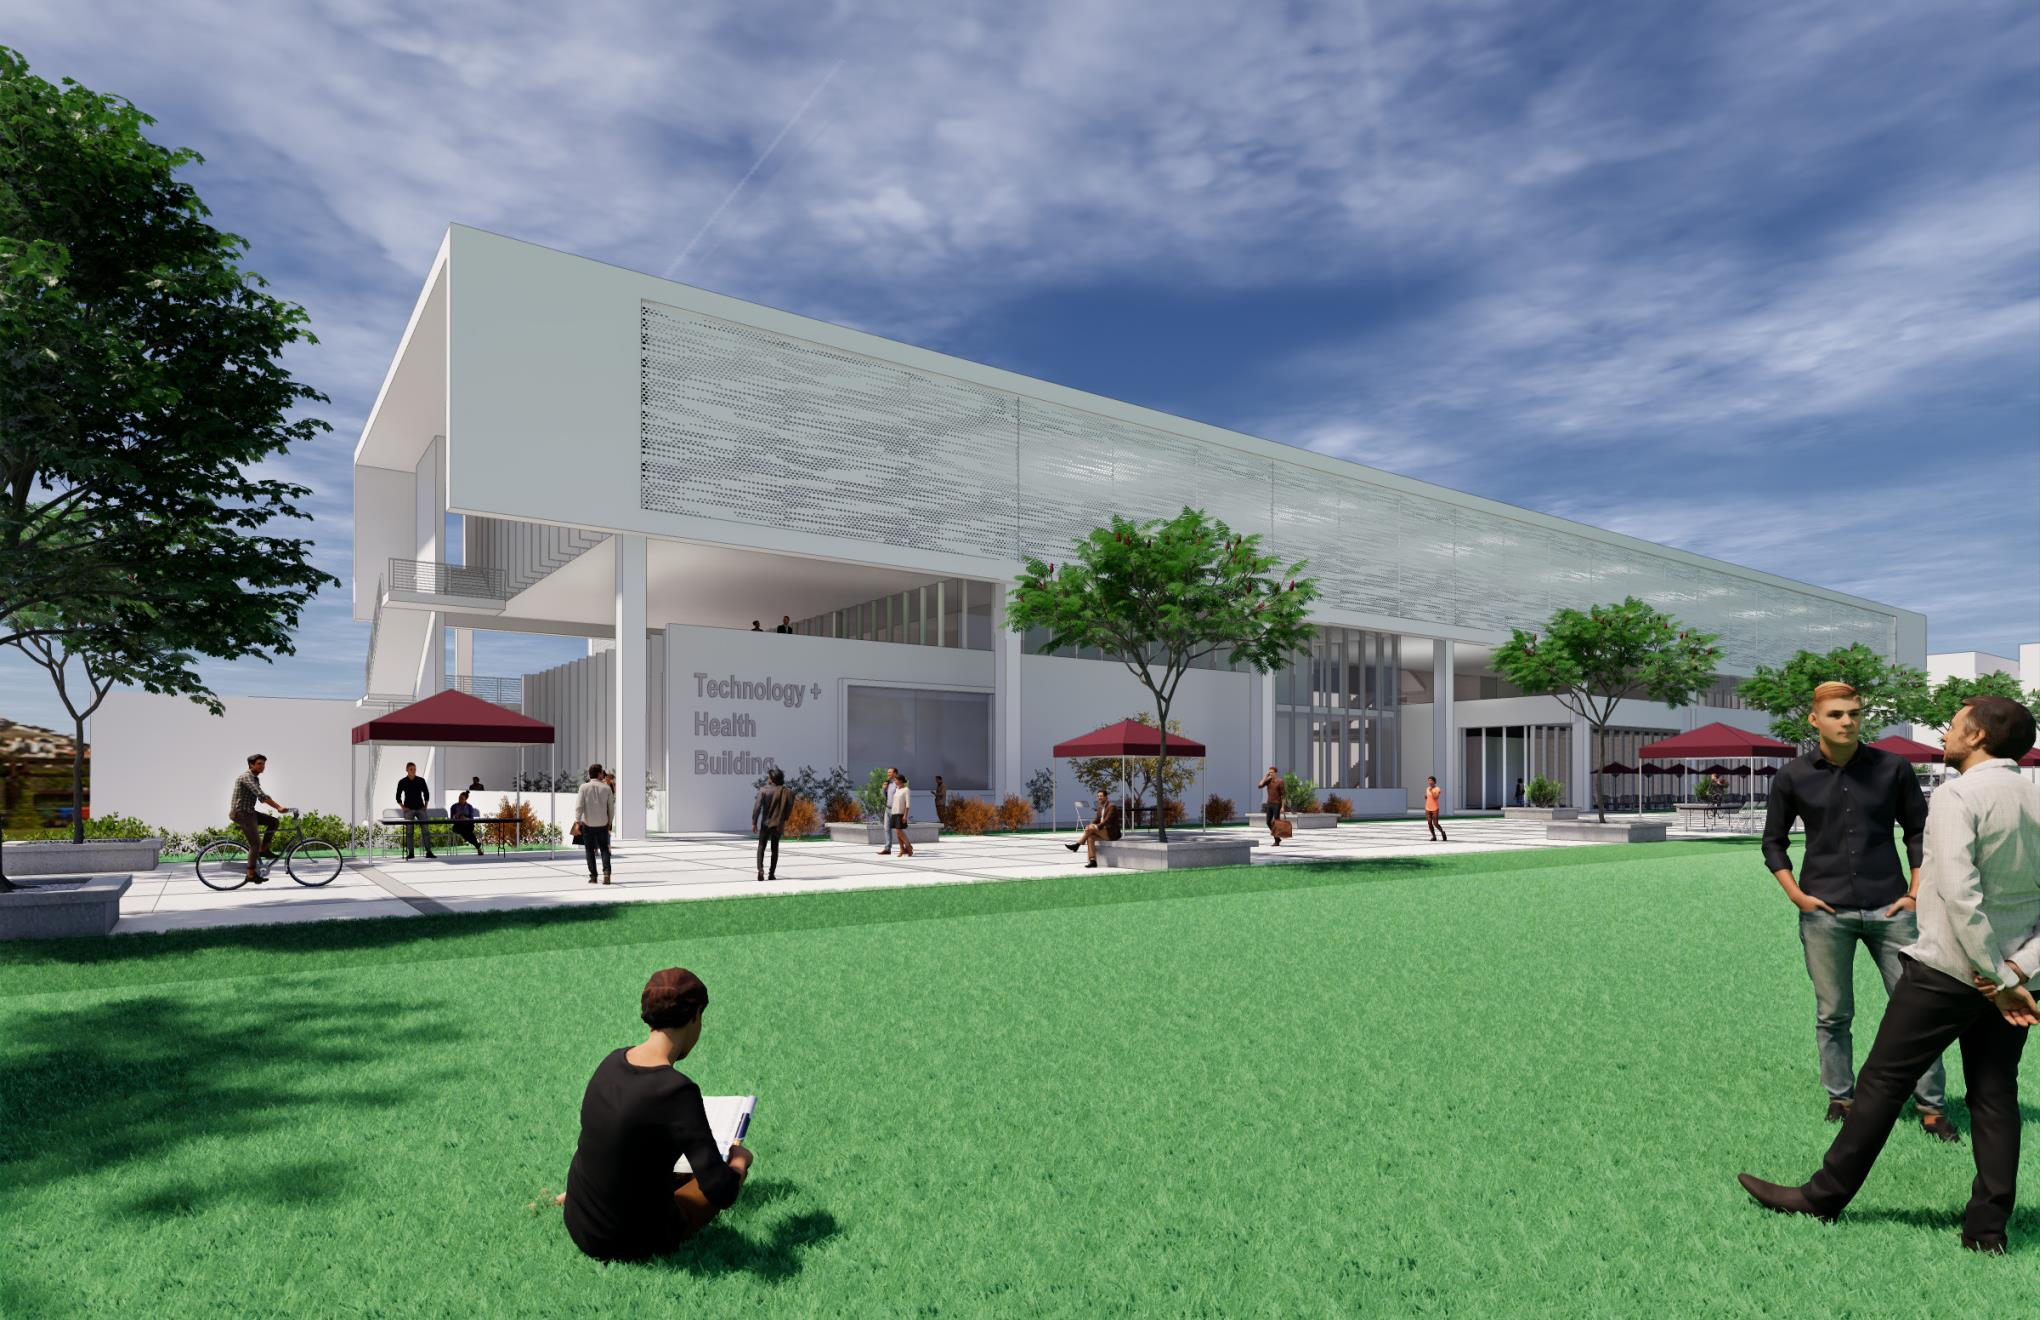 Rendering of Tech and Health Building